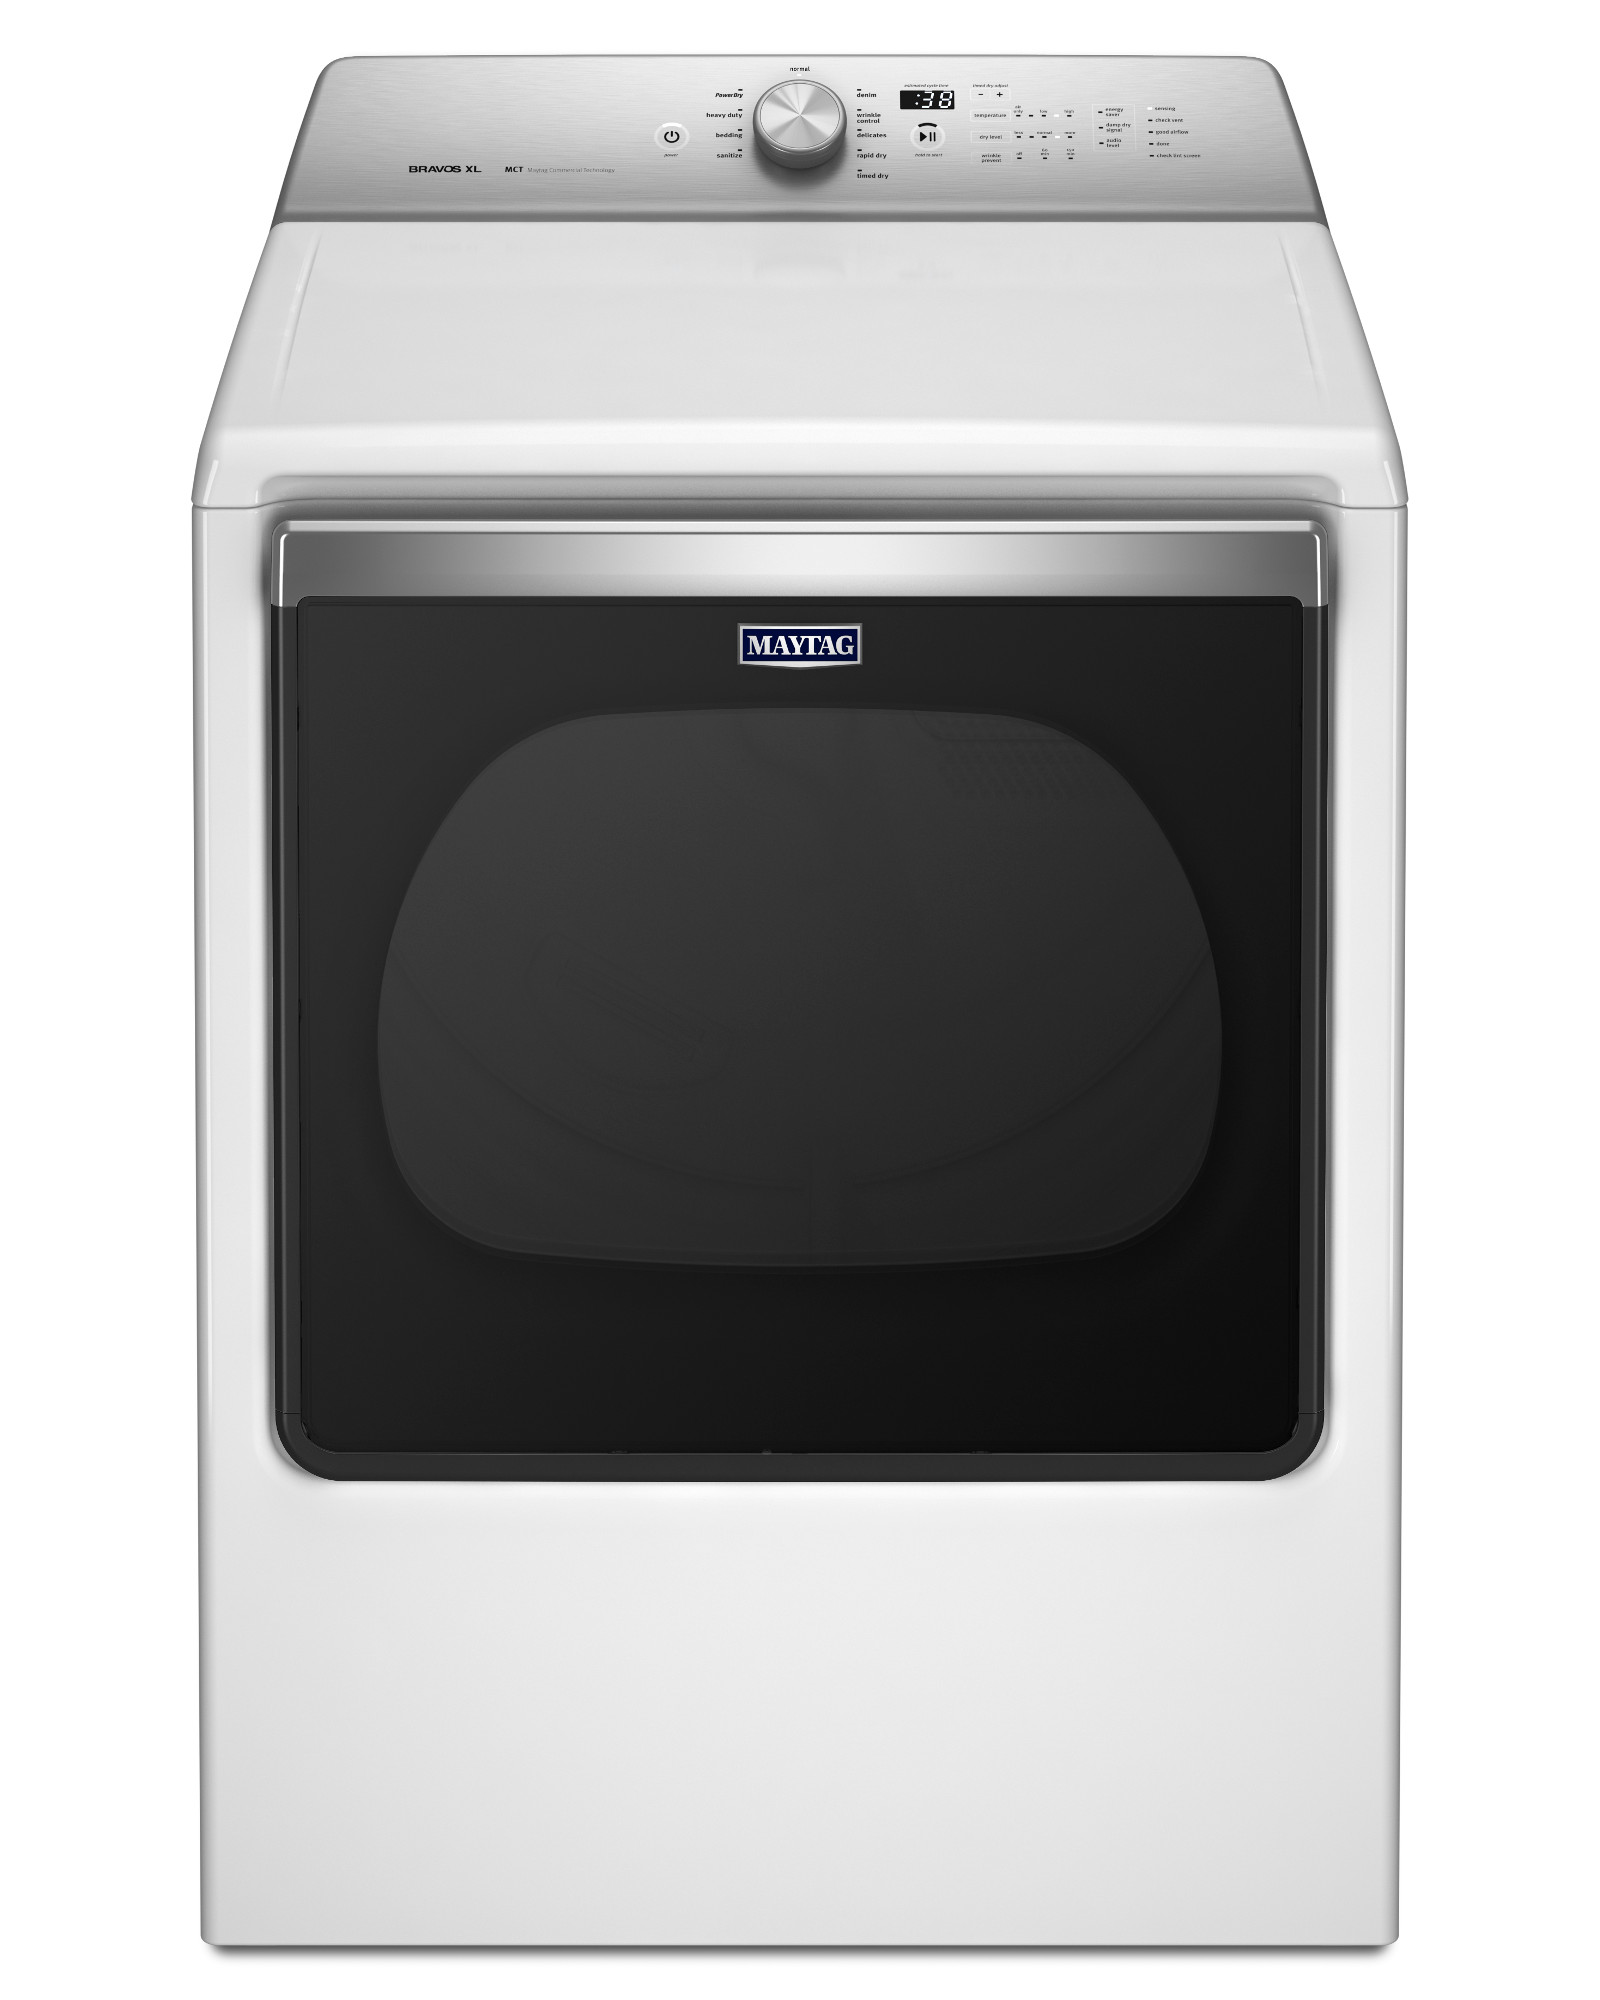 Maytag MGDB855DW 8.8 cu. ft. High-Capacity Gas Dryer - White